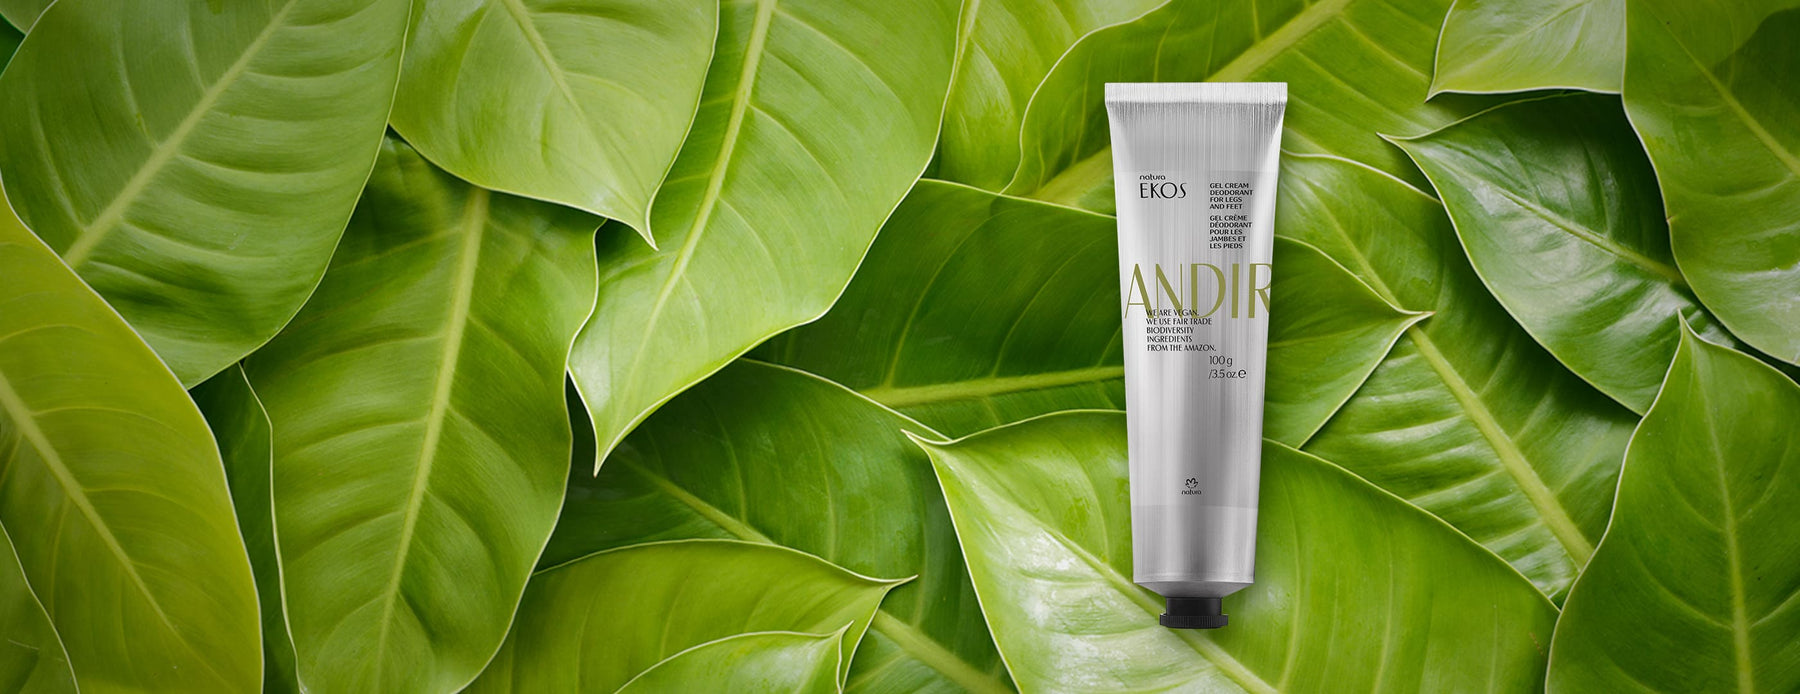 Andiroba Deodorant Foot and Foot Cream Gel